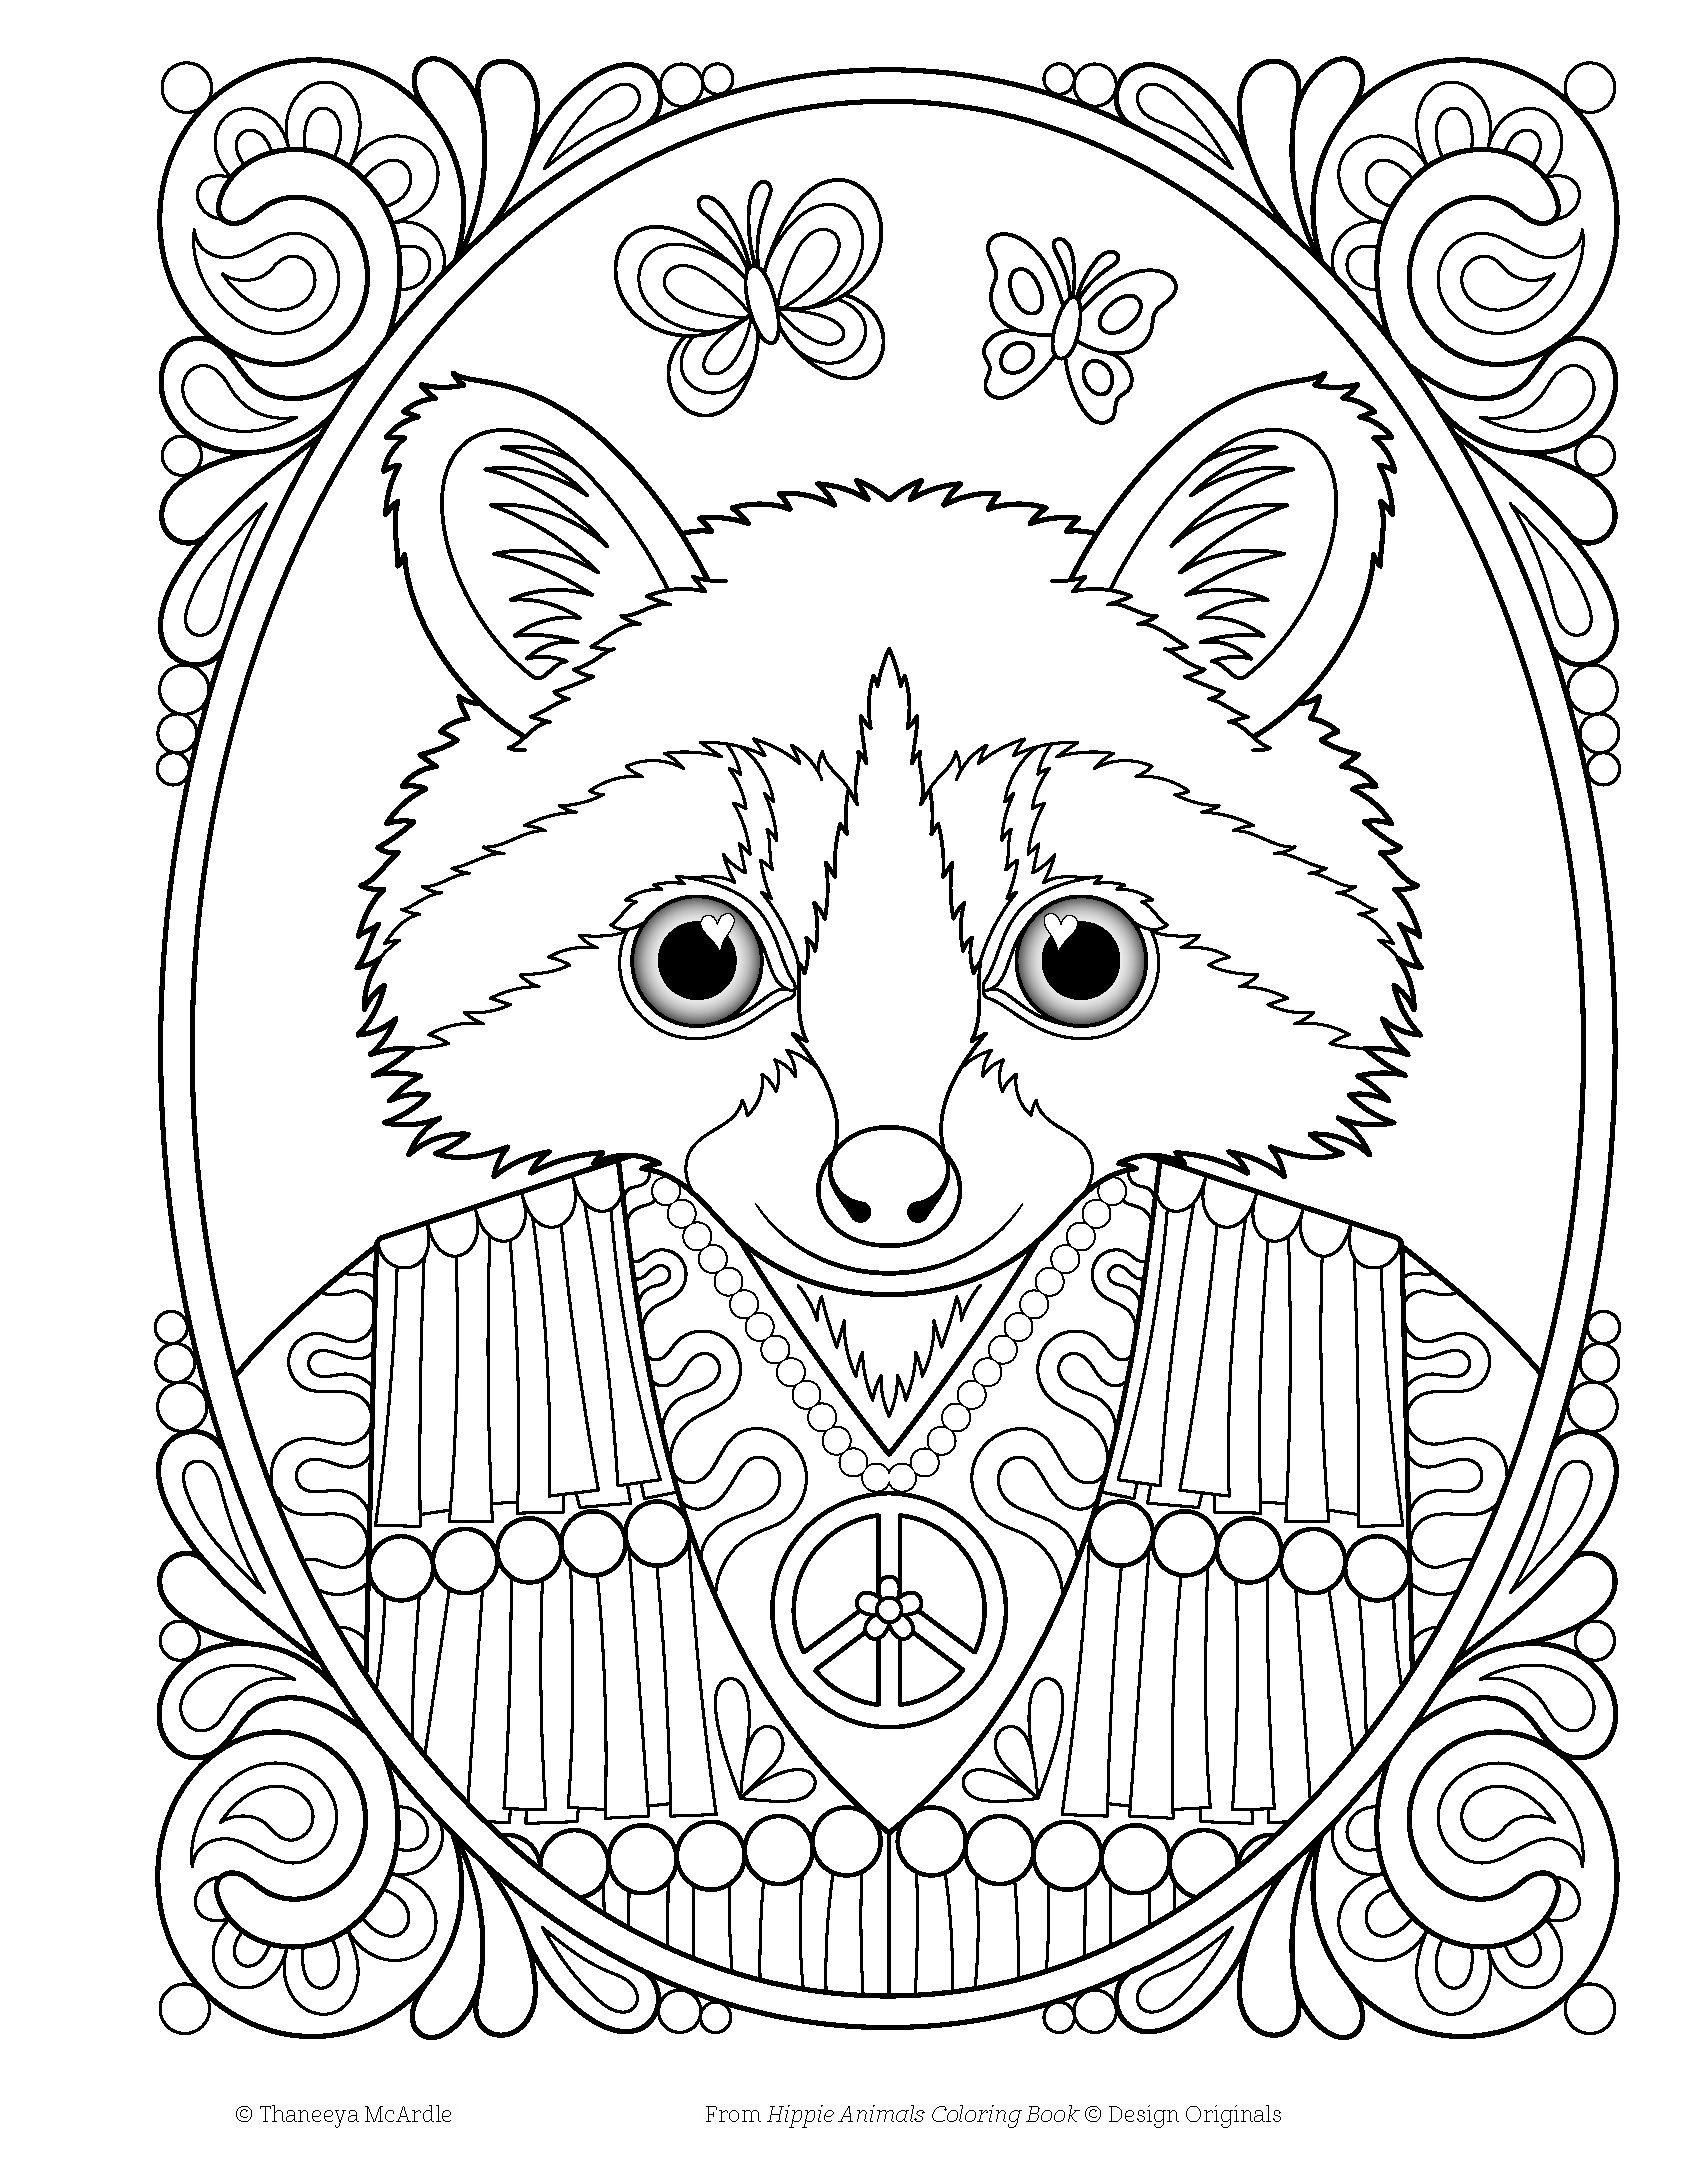 Amazon Hippie Animals Coloring Book Is Fun Design Originals 9781497202085 Thaneeya McArdle Books